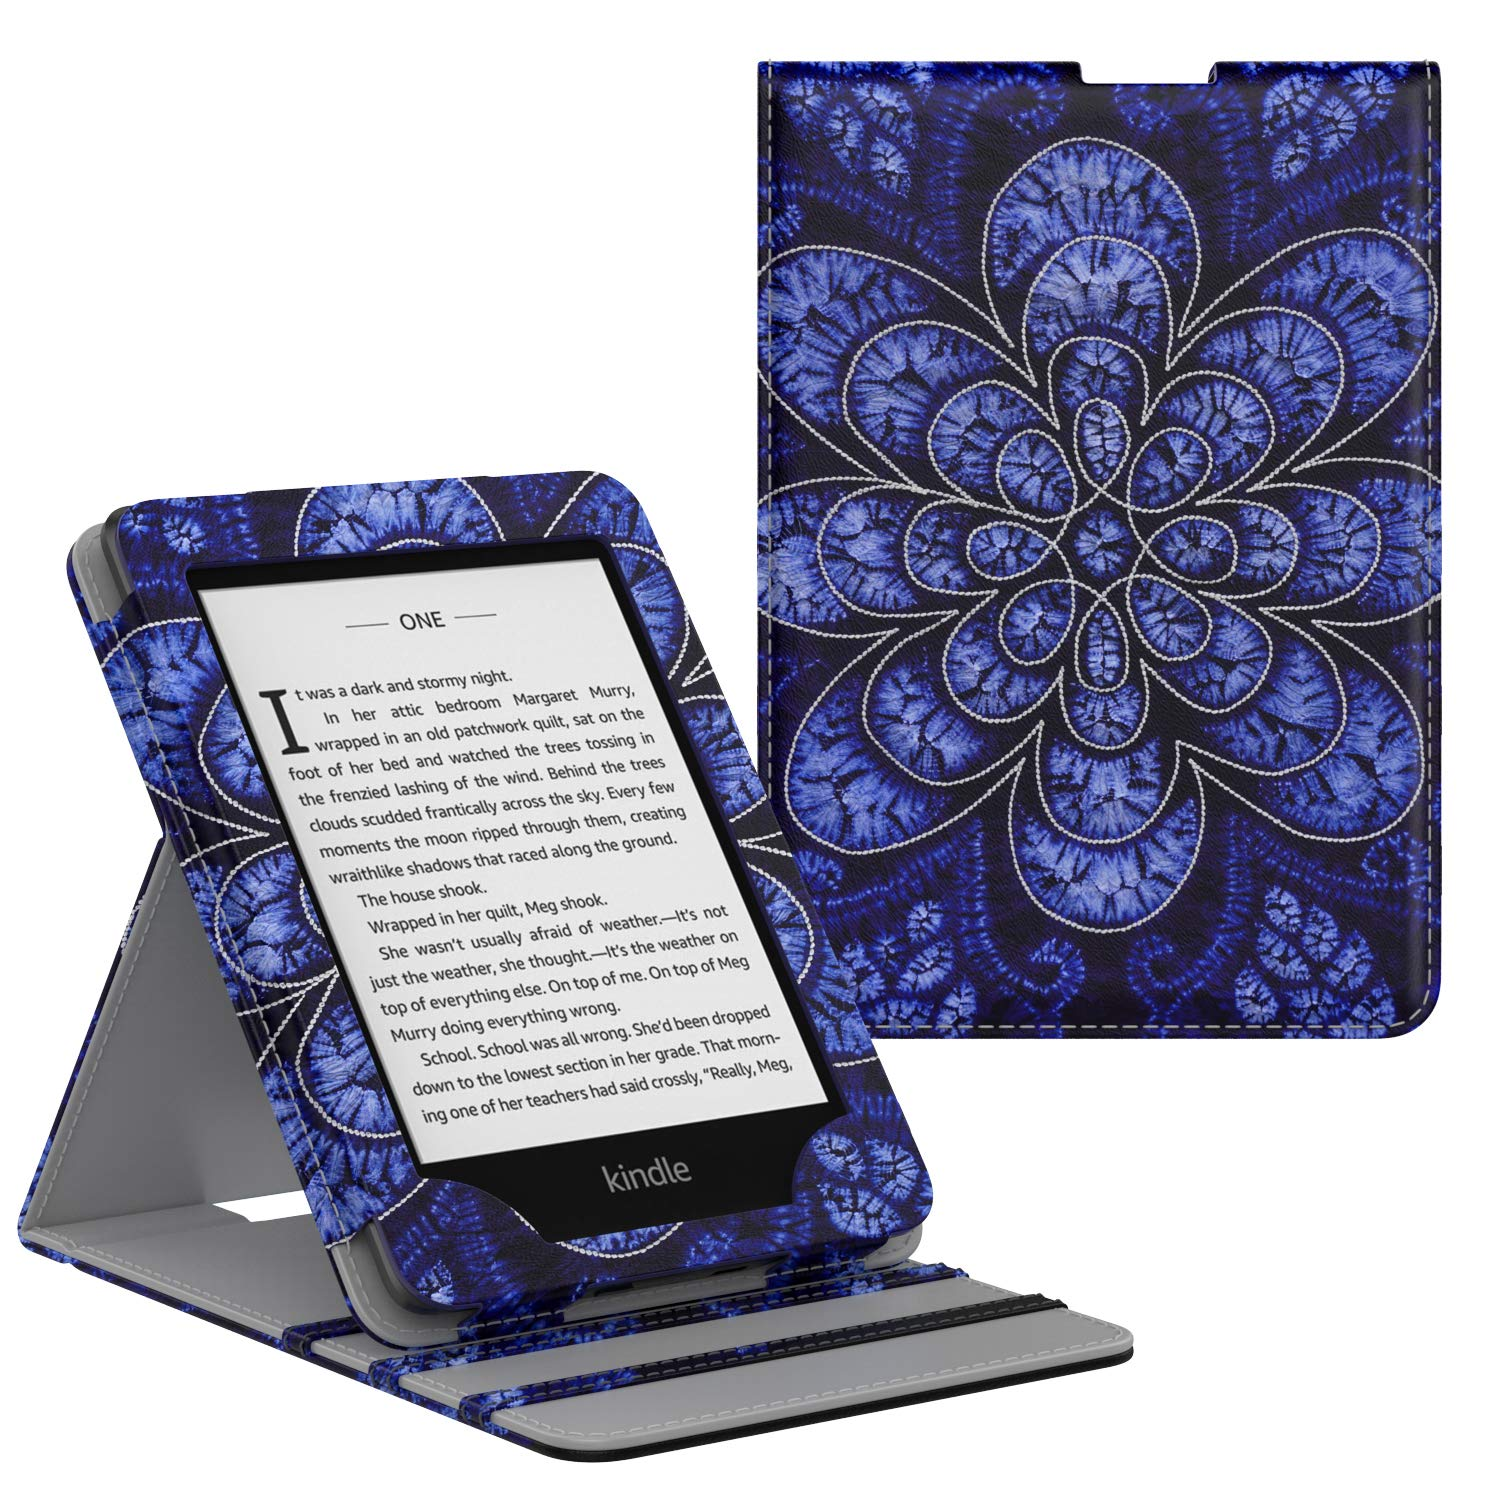 MoKo Case Fits Kindle Paperwhite (10th Generation, 2018 Releases), Premium Vertical Flip Cover with Auto Wake/Sleep Compatible for Amazon Kindle Paperwhite 2018 E-Reader - Rattan Flower Blossom